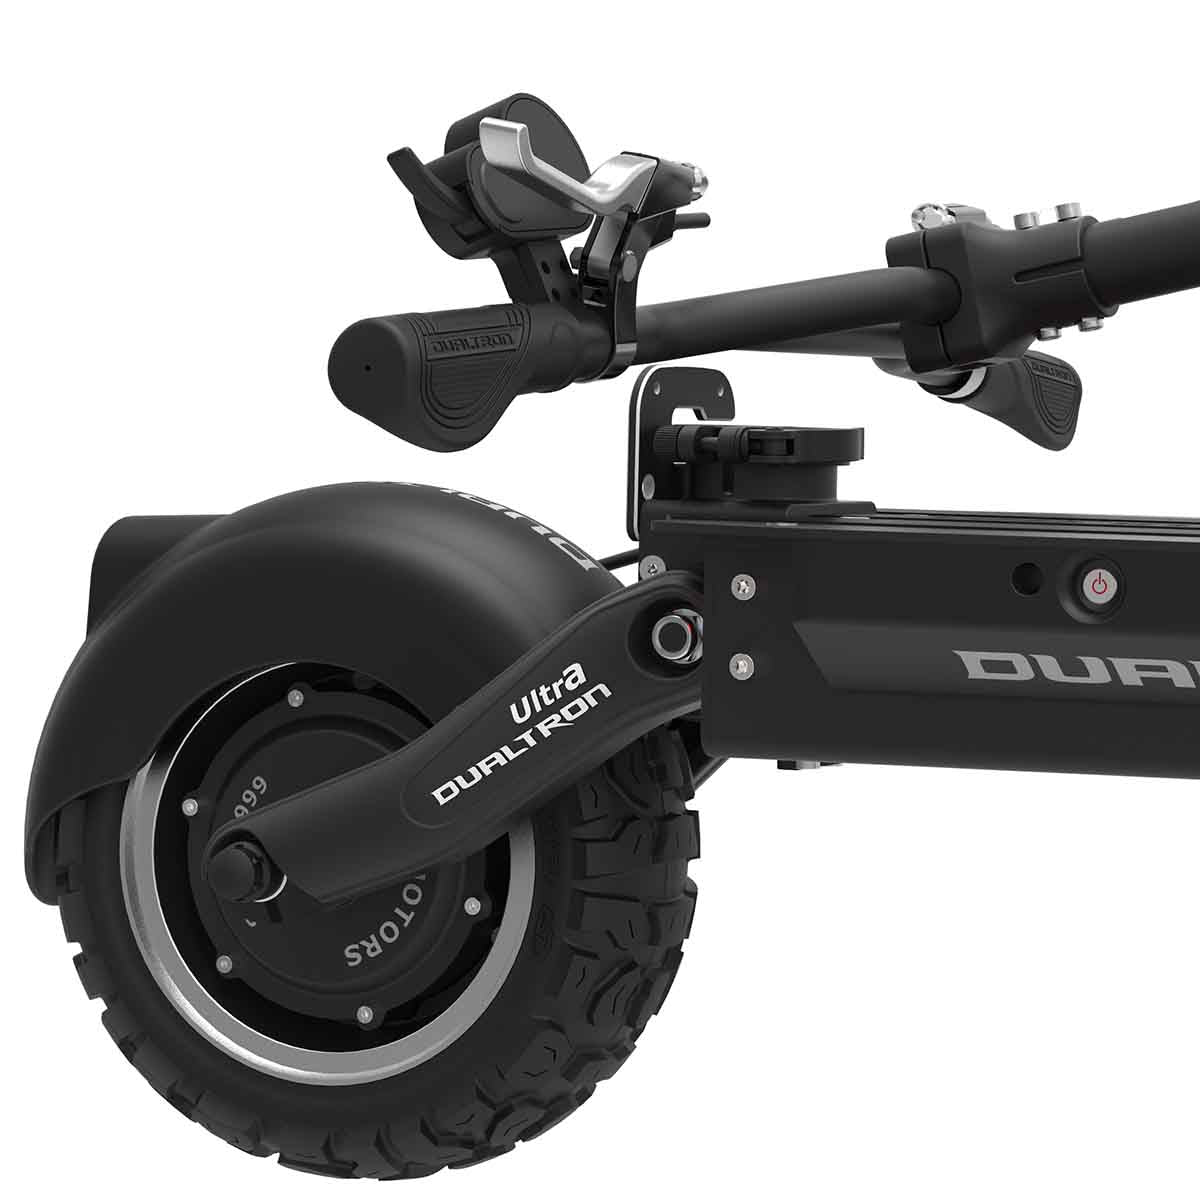 Dualtron Ultra Electric Scooter Folding detail